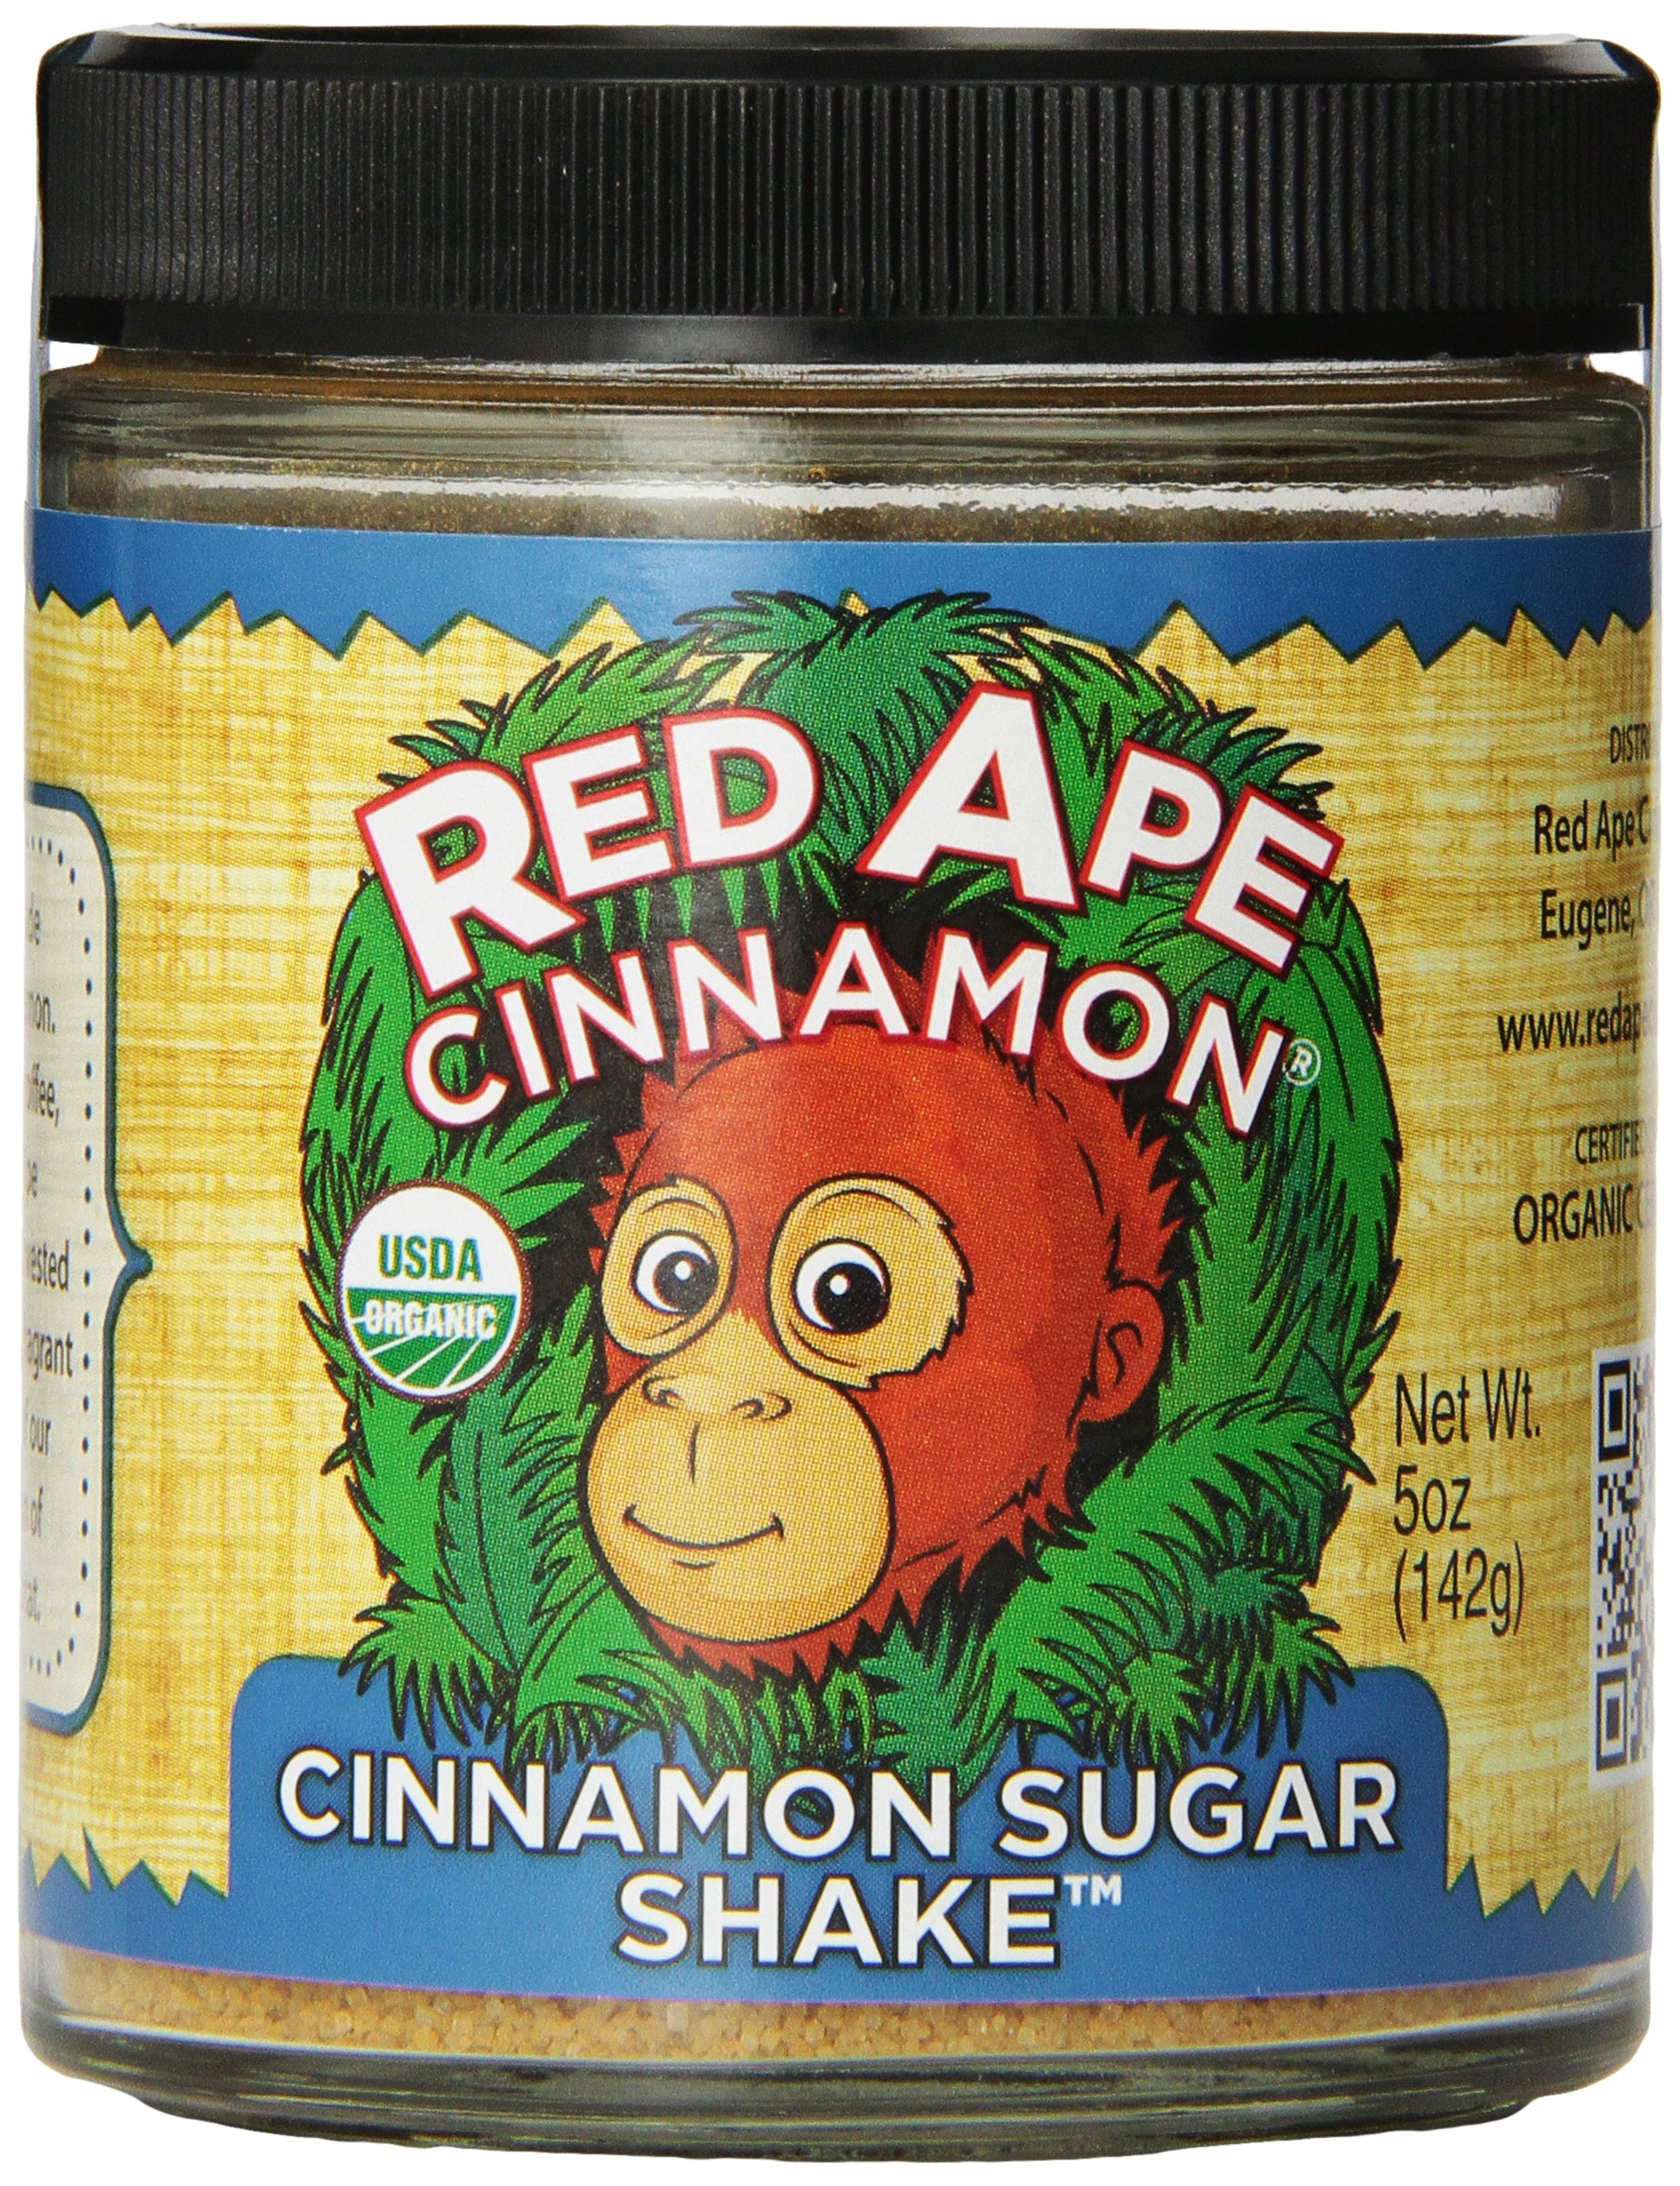 Red Ape Cinnamon Sugar Shake, Cinnamon, 5 Ounce